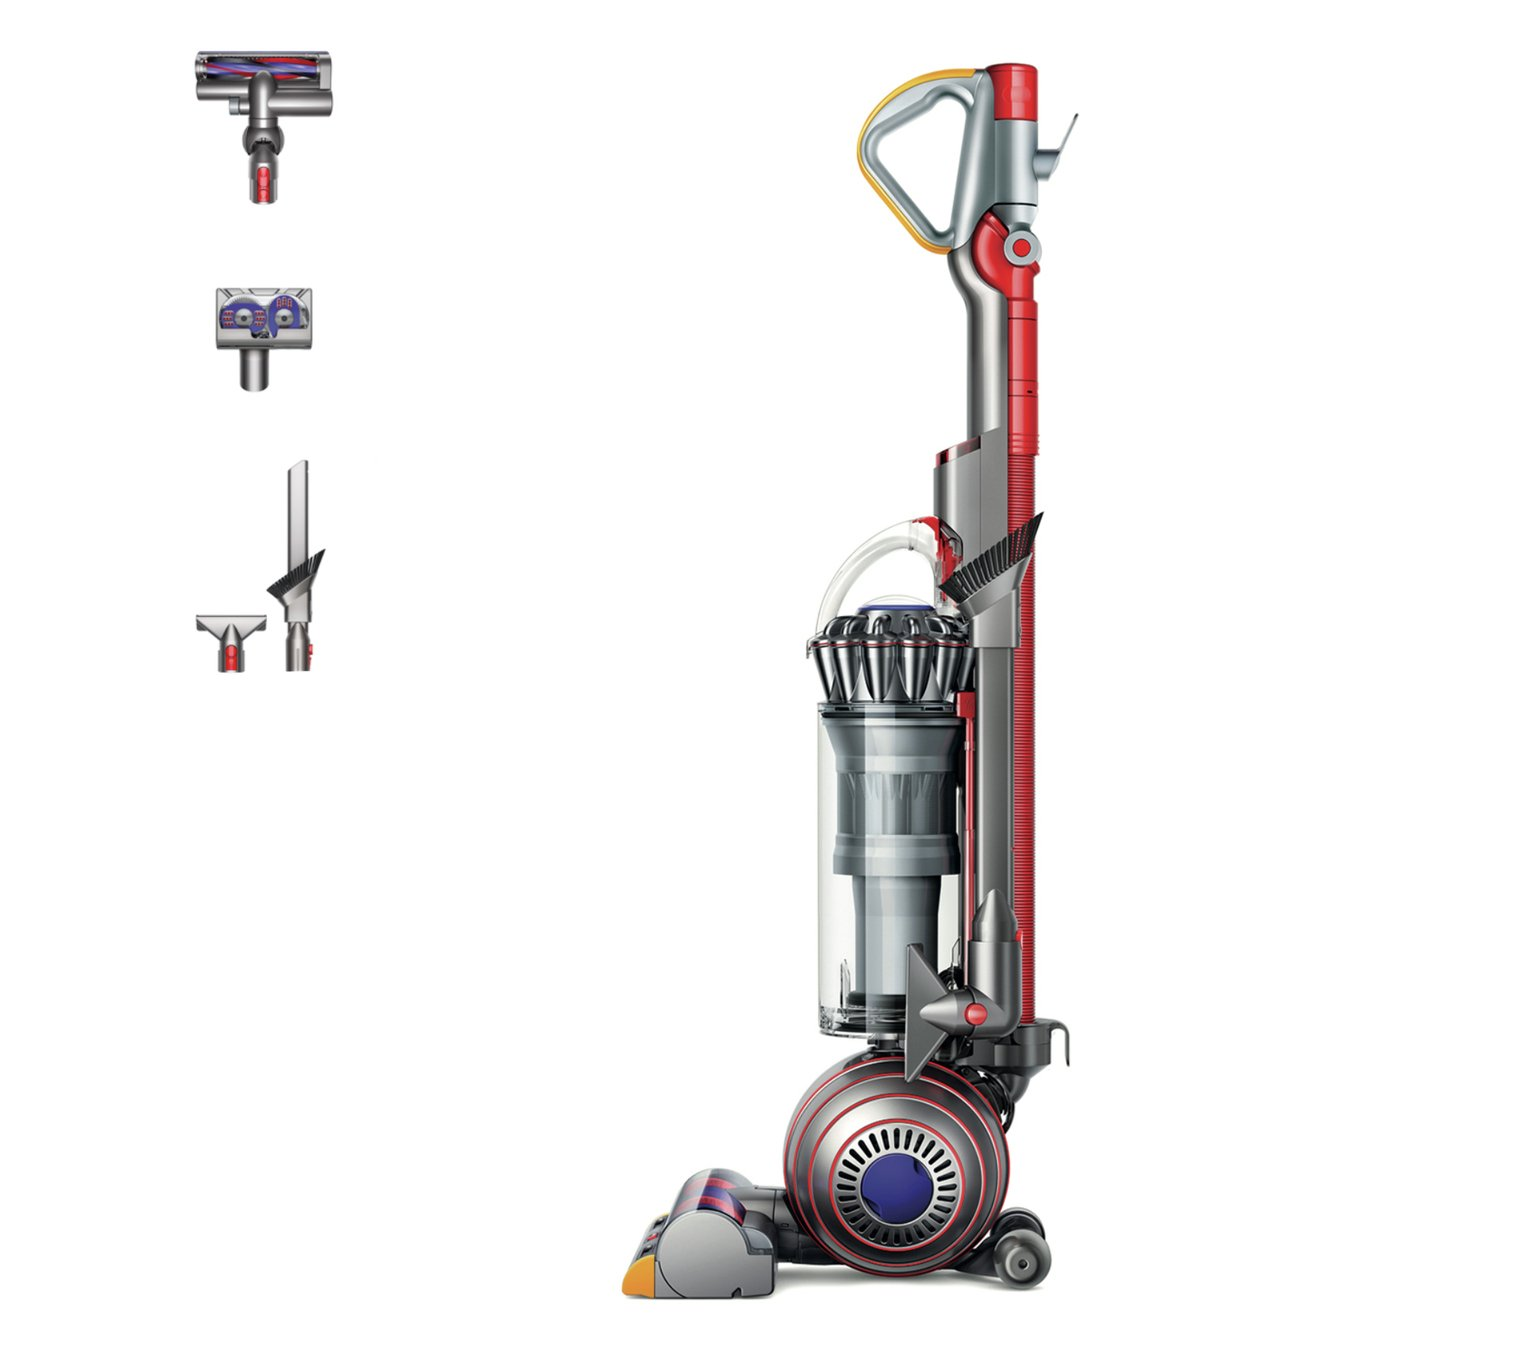 Dyson Ball Animal 2 Bagless Upright Vacuum Cleaner